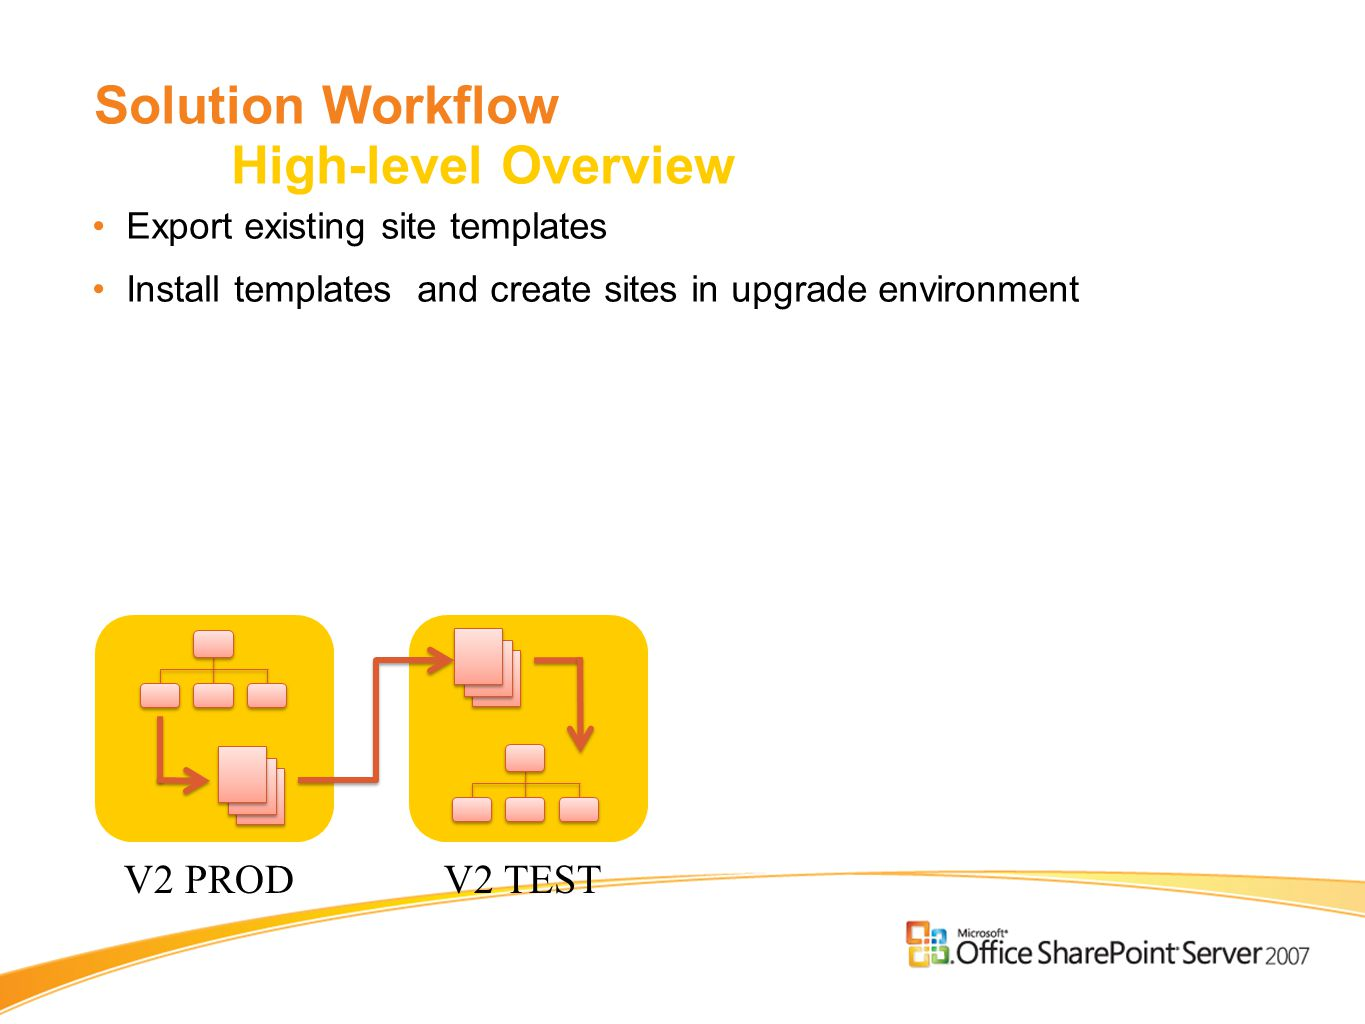 Solution Workflow High-level Overview Export existing site templates Install templates and create sites in upgrade environment V2 PRODV2 TEST